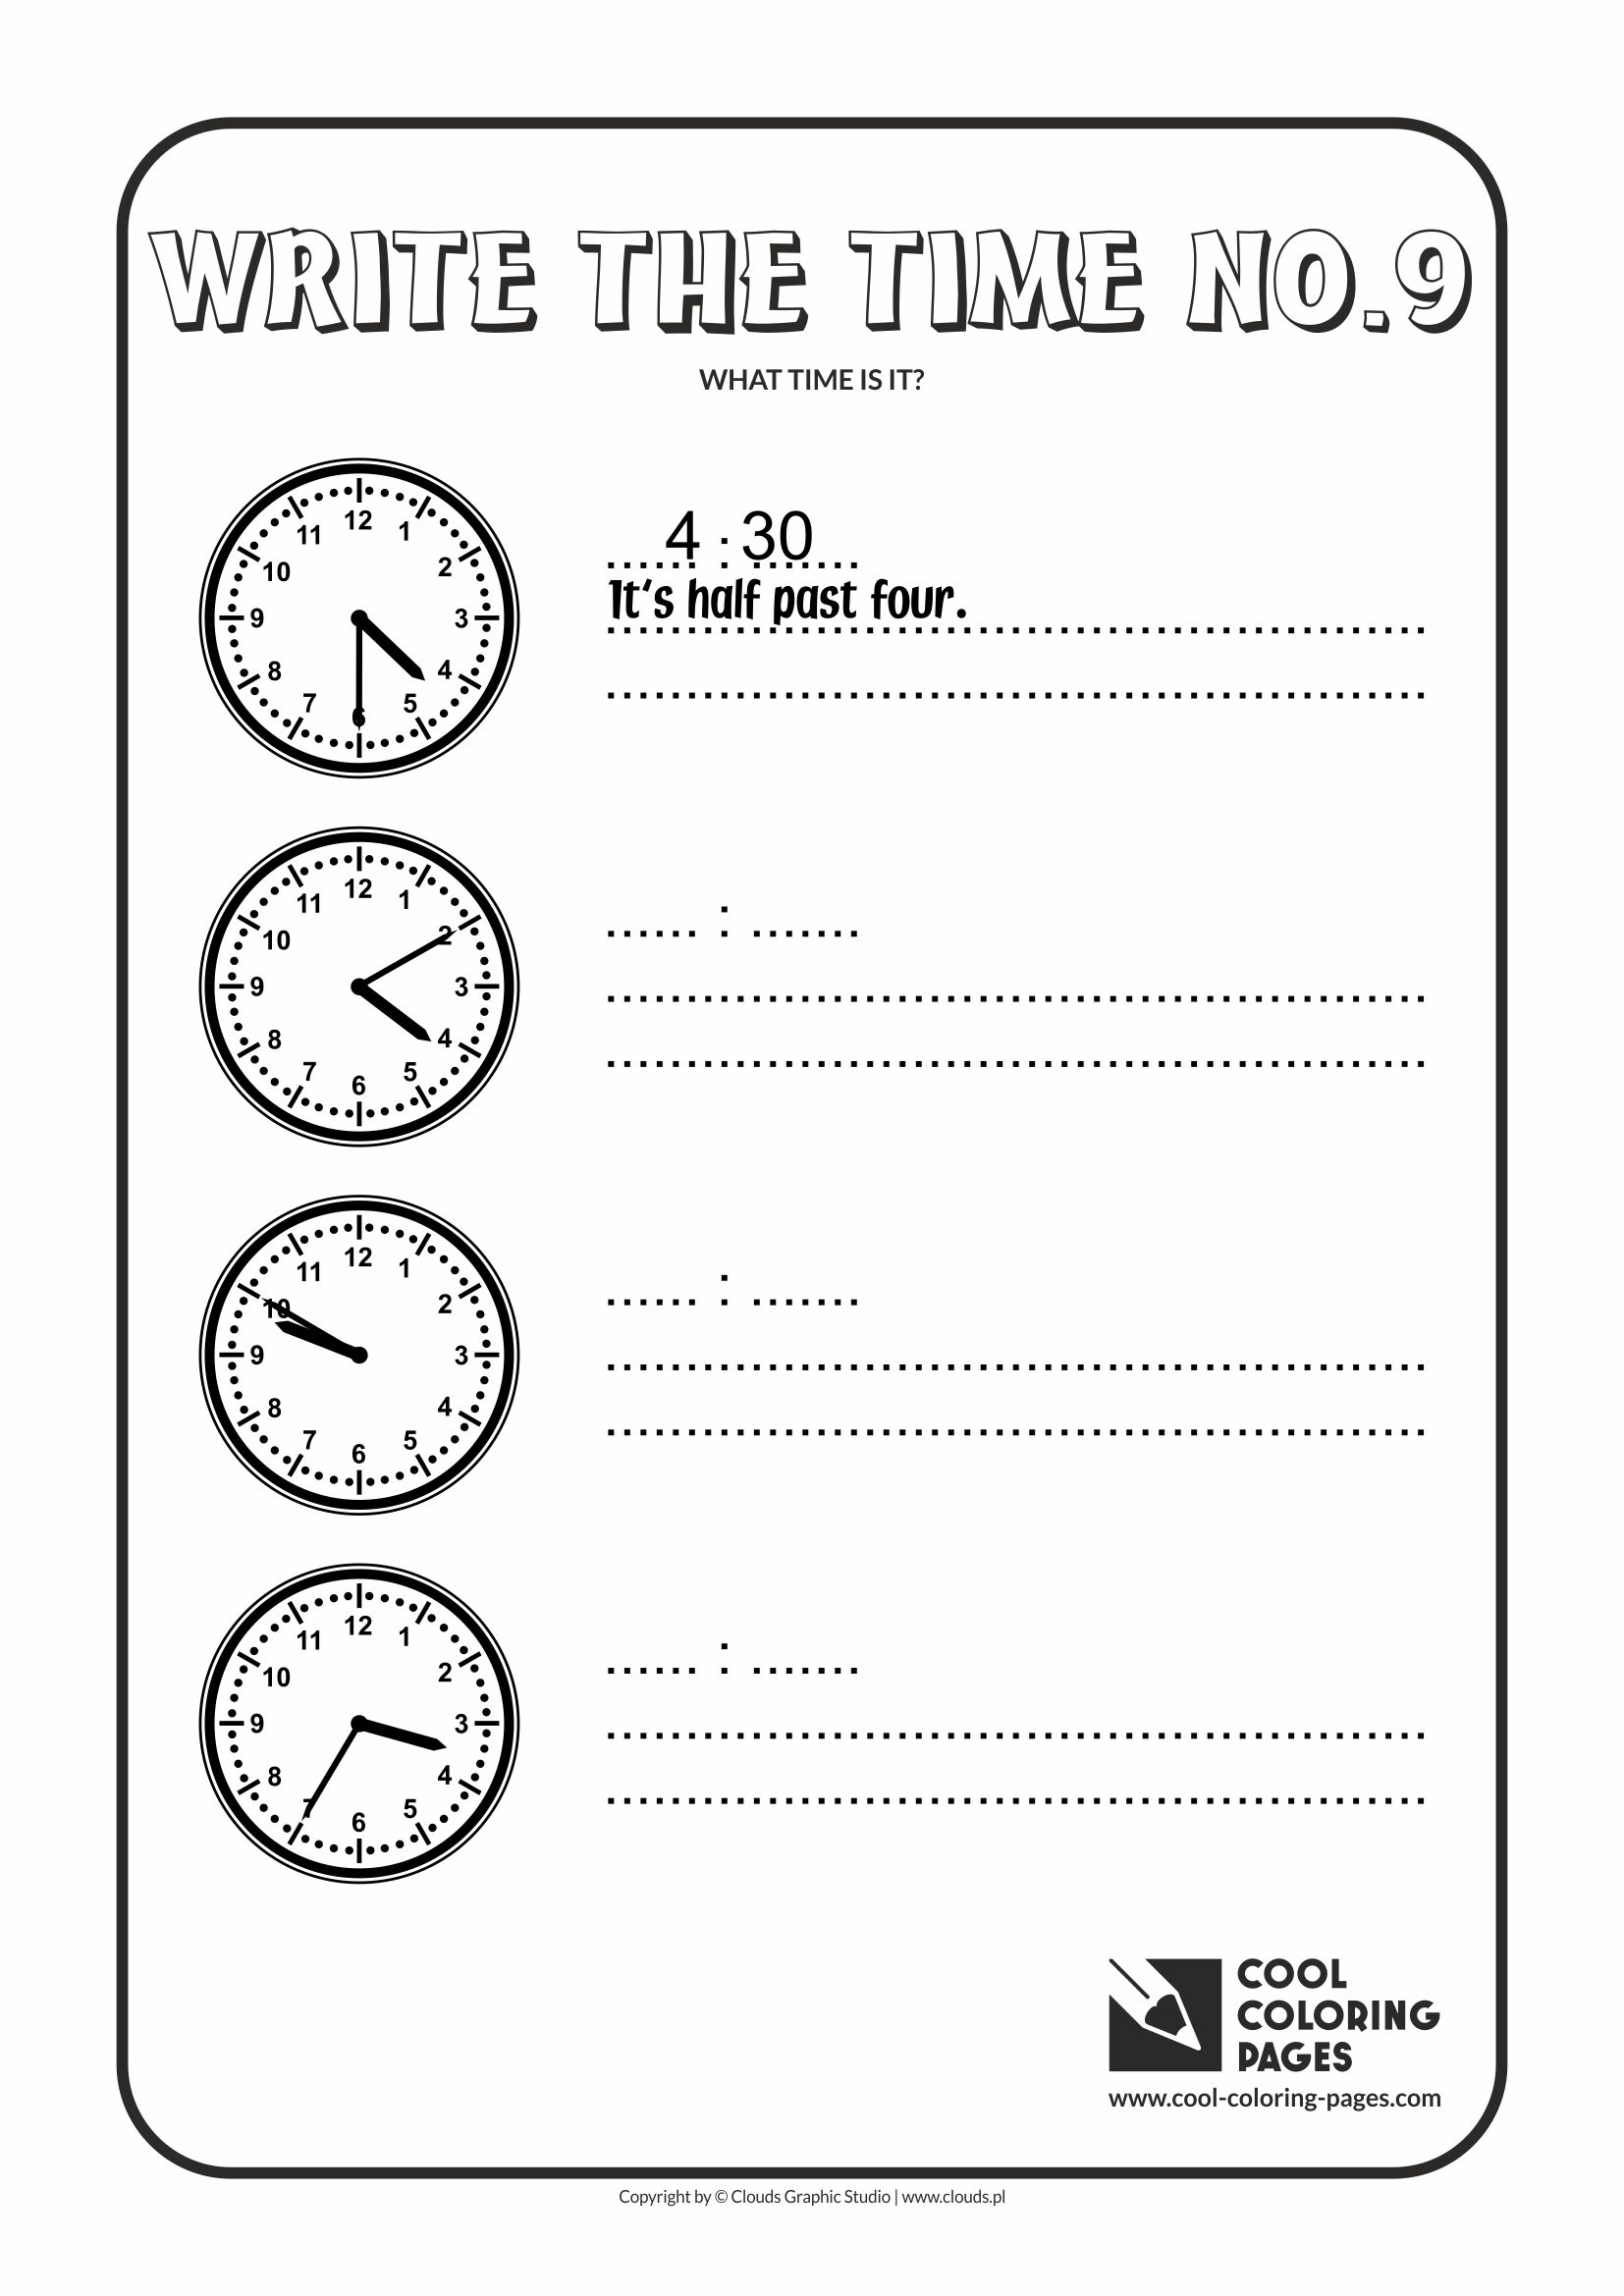 Cool Coloring Pages - Time / Write the time no.9